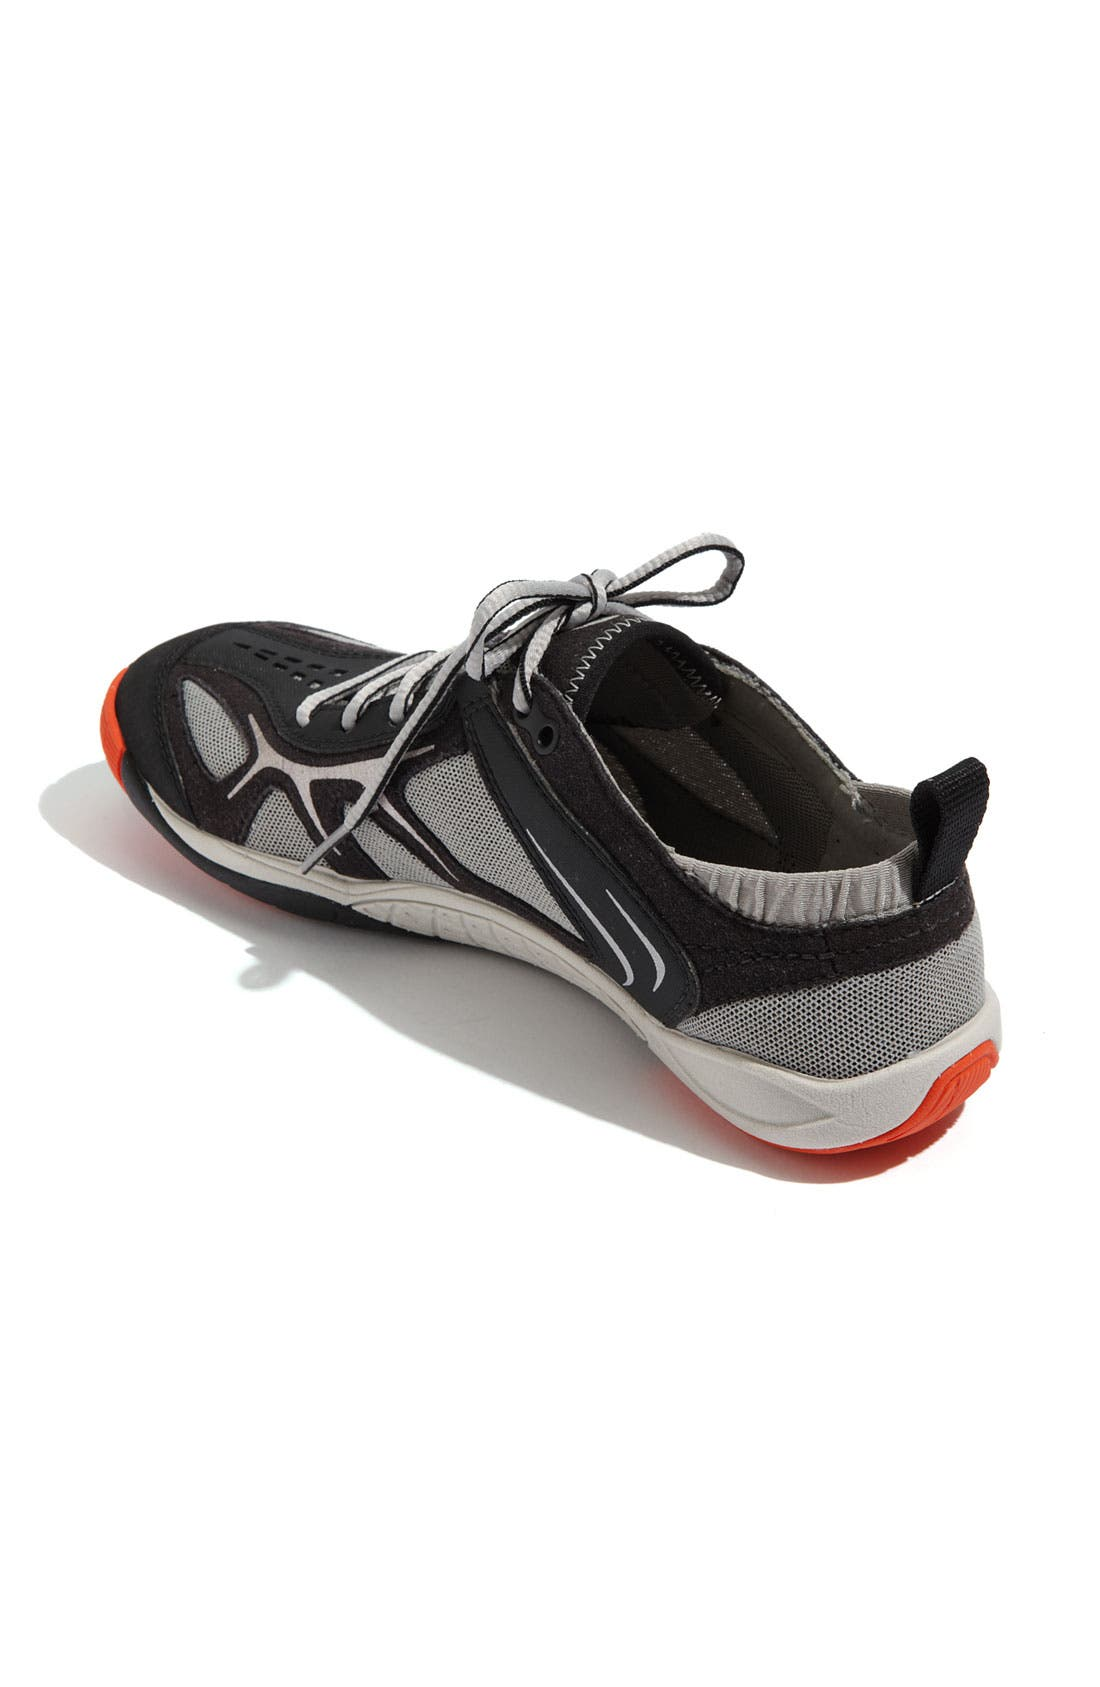 Alternate Image 2  - Merrell 'Dash Glove' Running Shoe (Women)